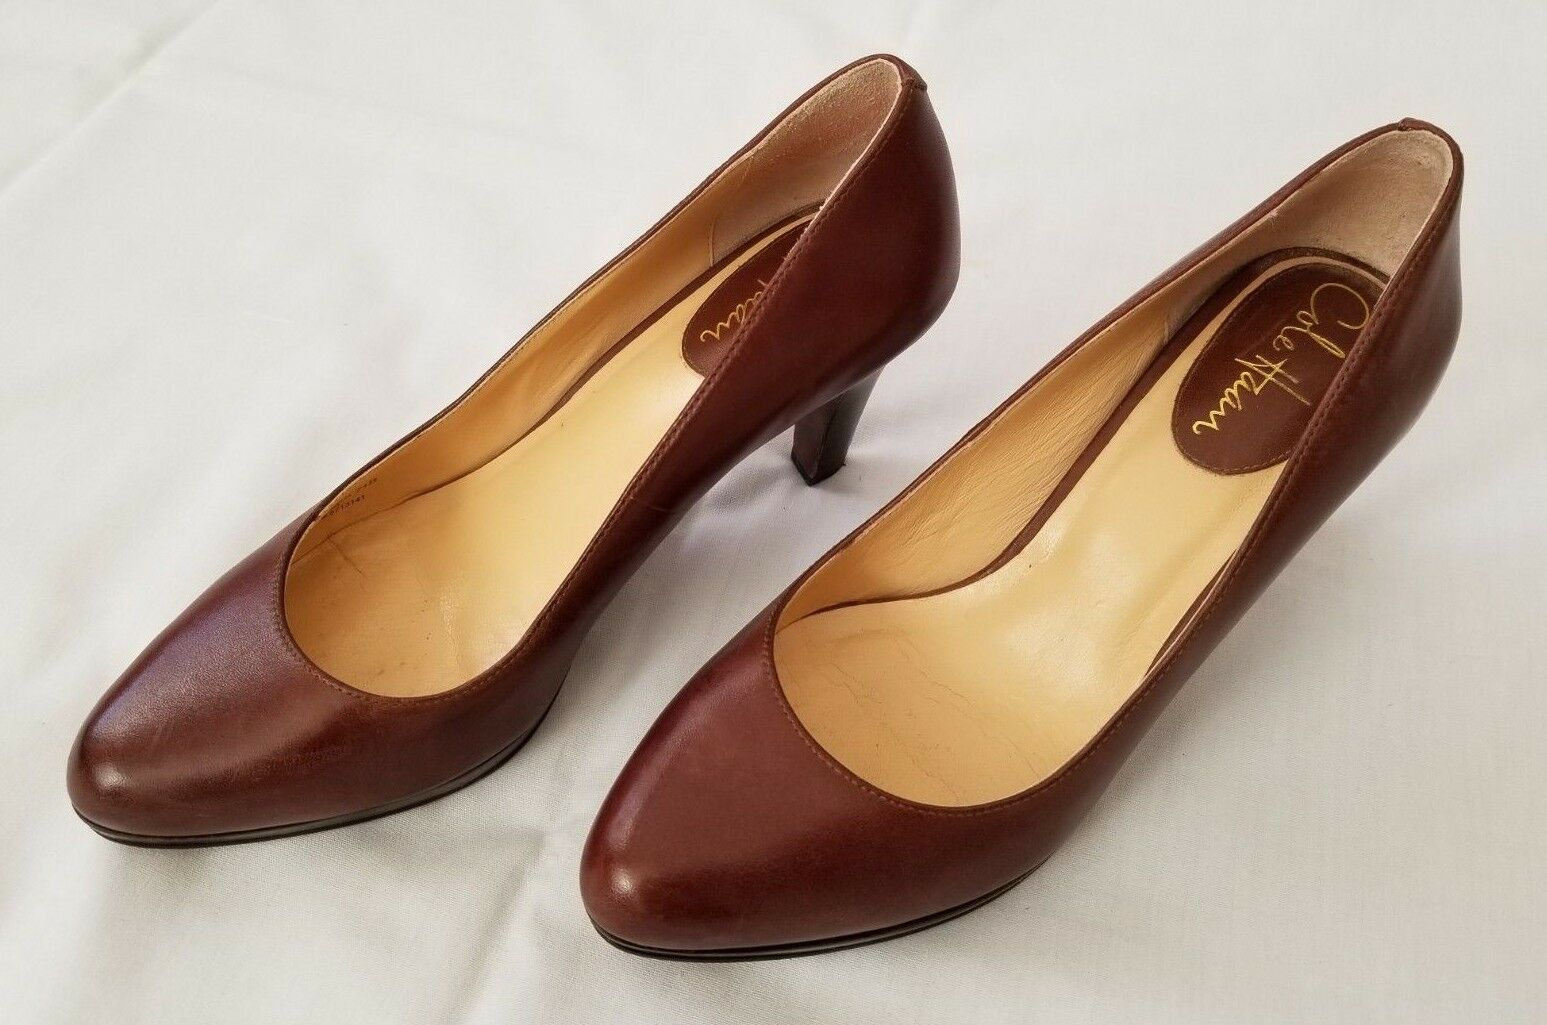 Womens size 7.5B Brown Cole Haan Leather Heels Pumps D32969 preowned